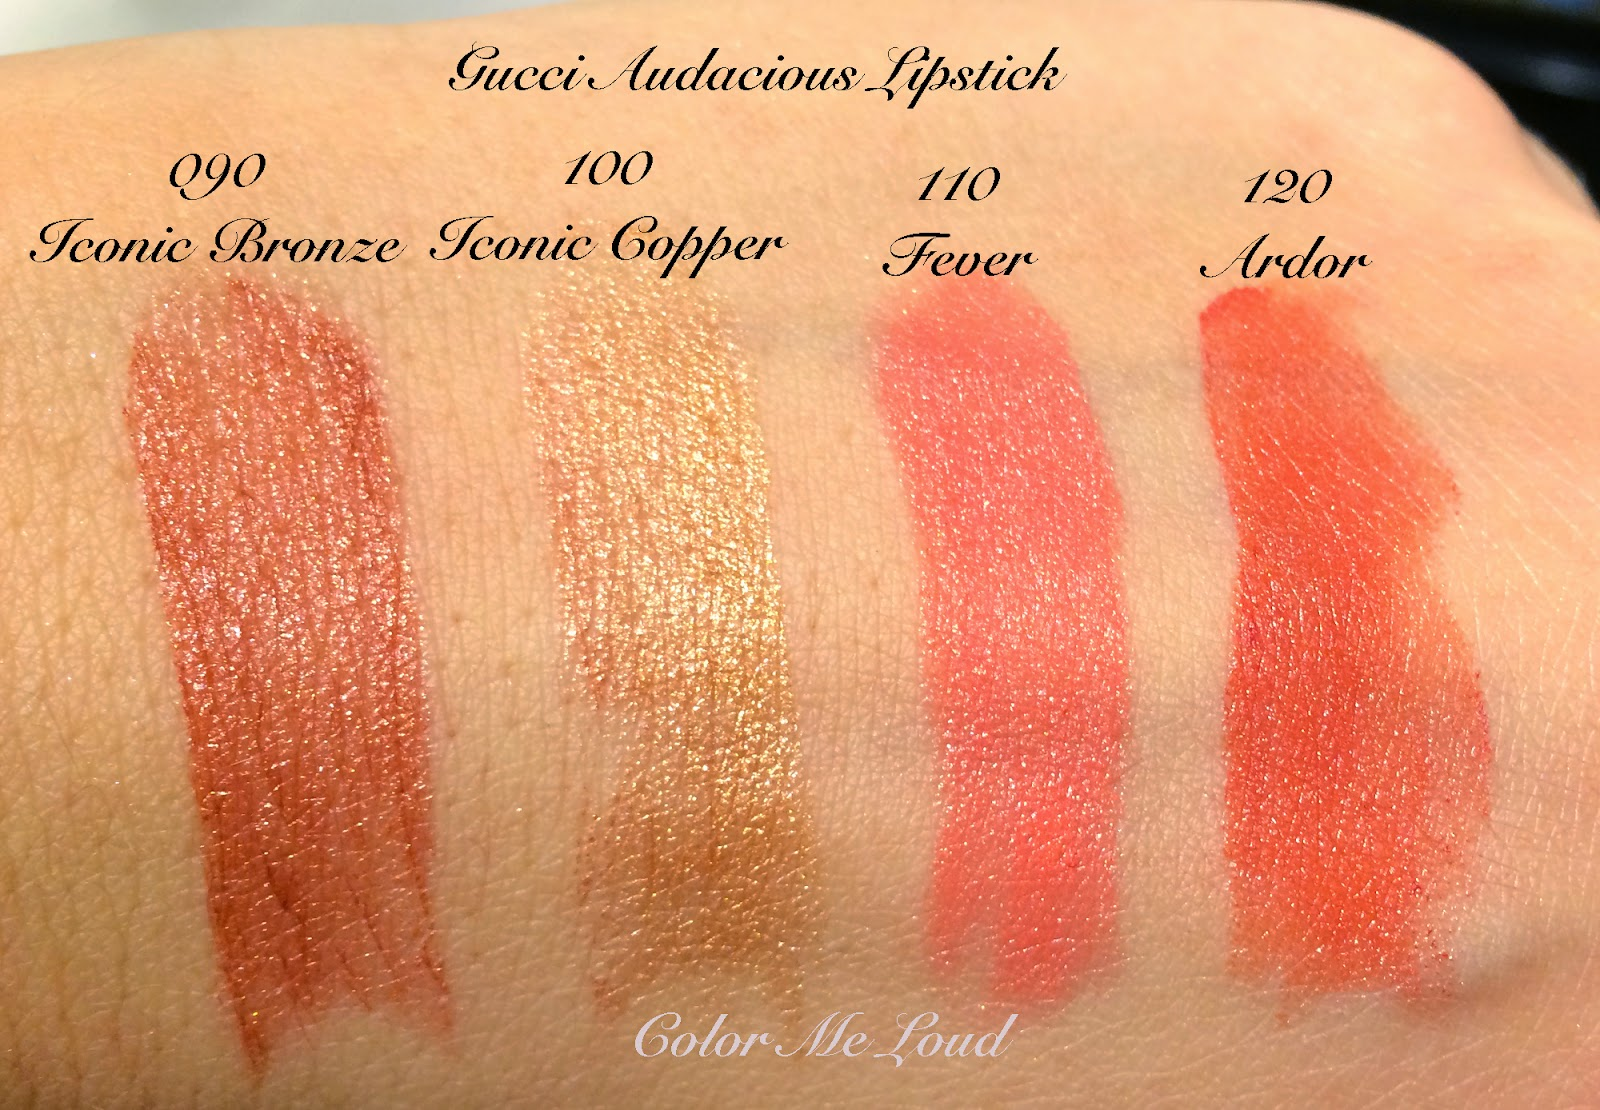 Gucci Audacious Lipstick Swatches, Iconic Bronze, Iconic Copper, Fever and Ardor